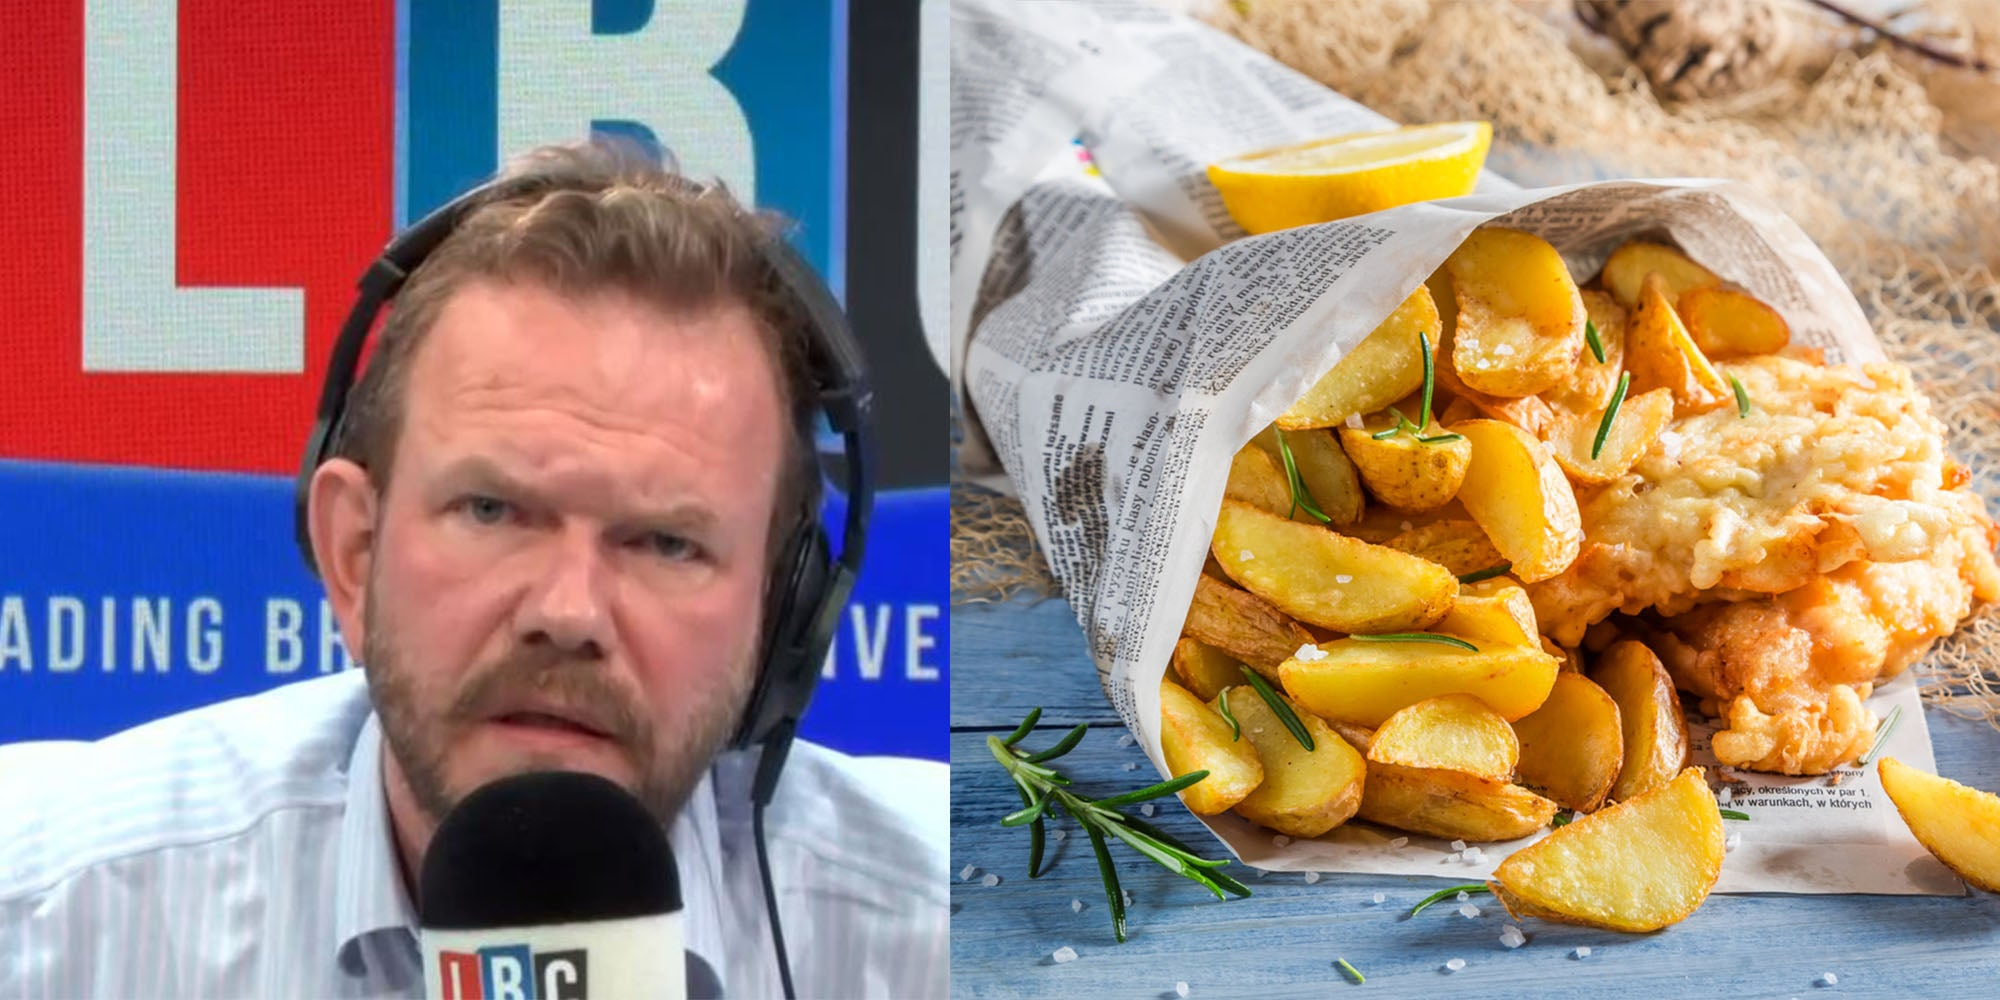 Brexiteer wants to leave EU so she can 'eat fish and chips from a newspaper again'